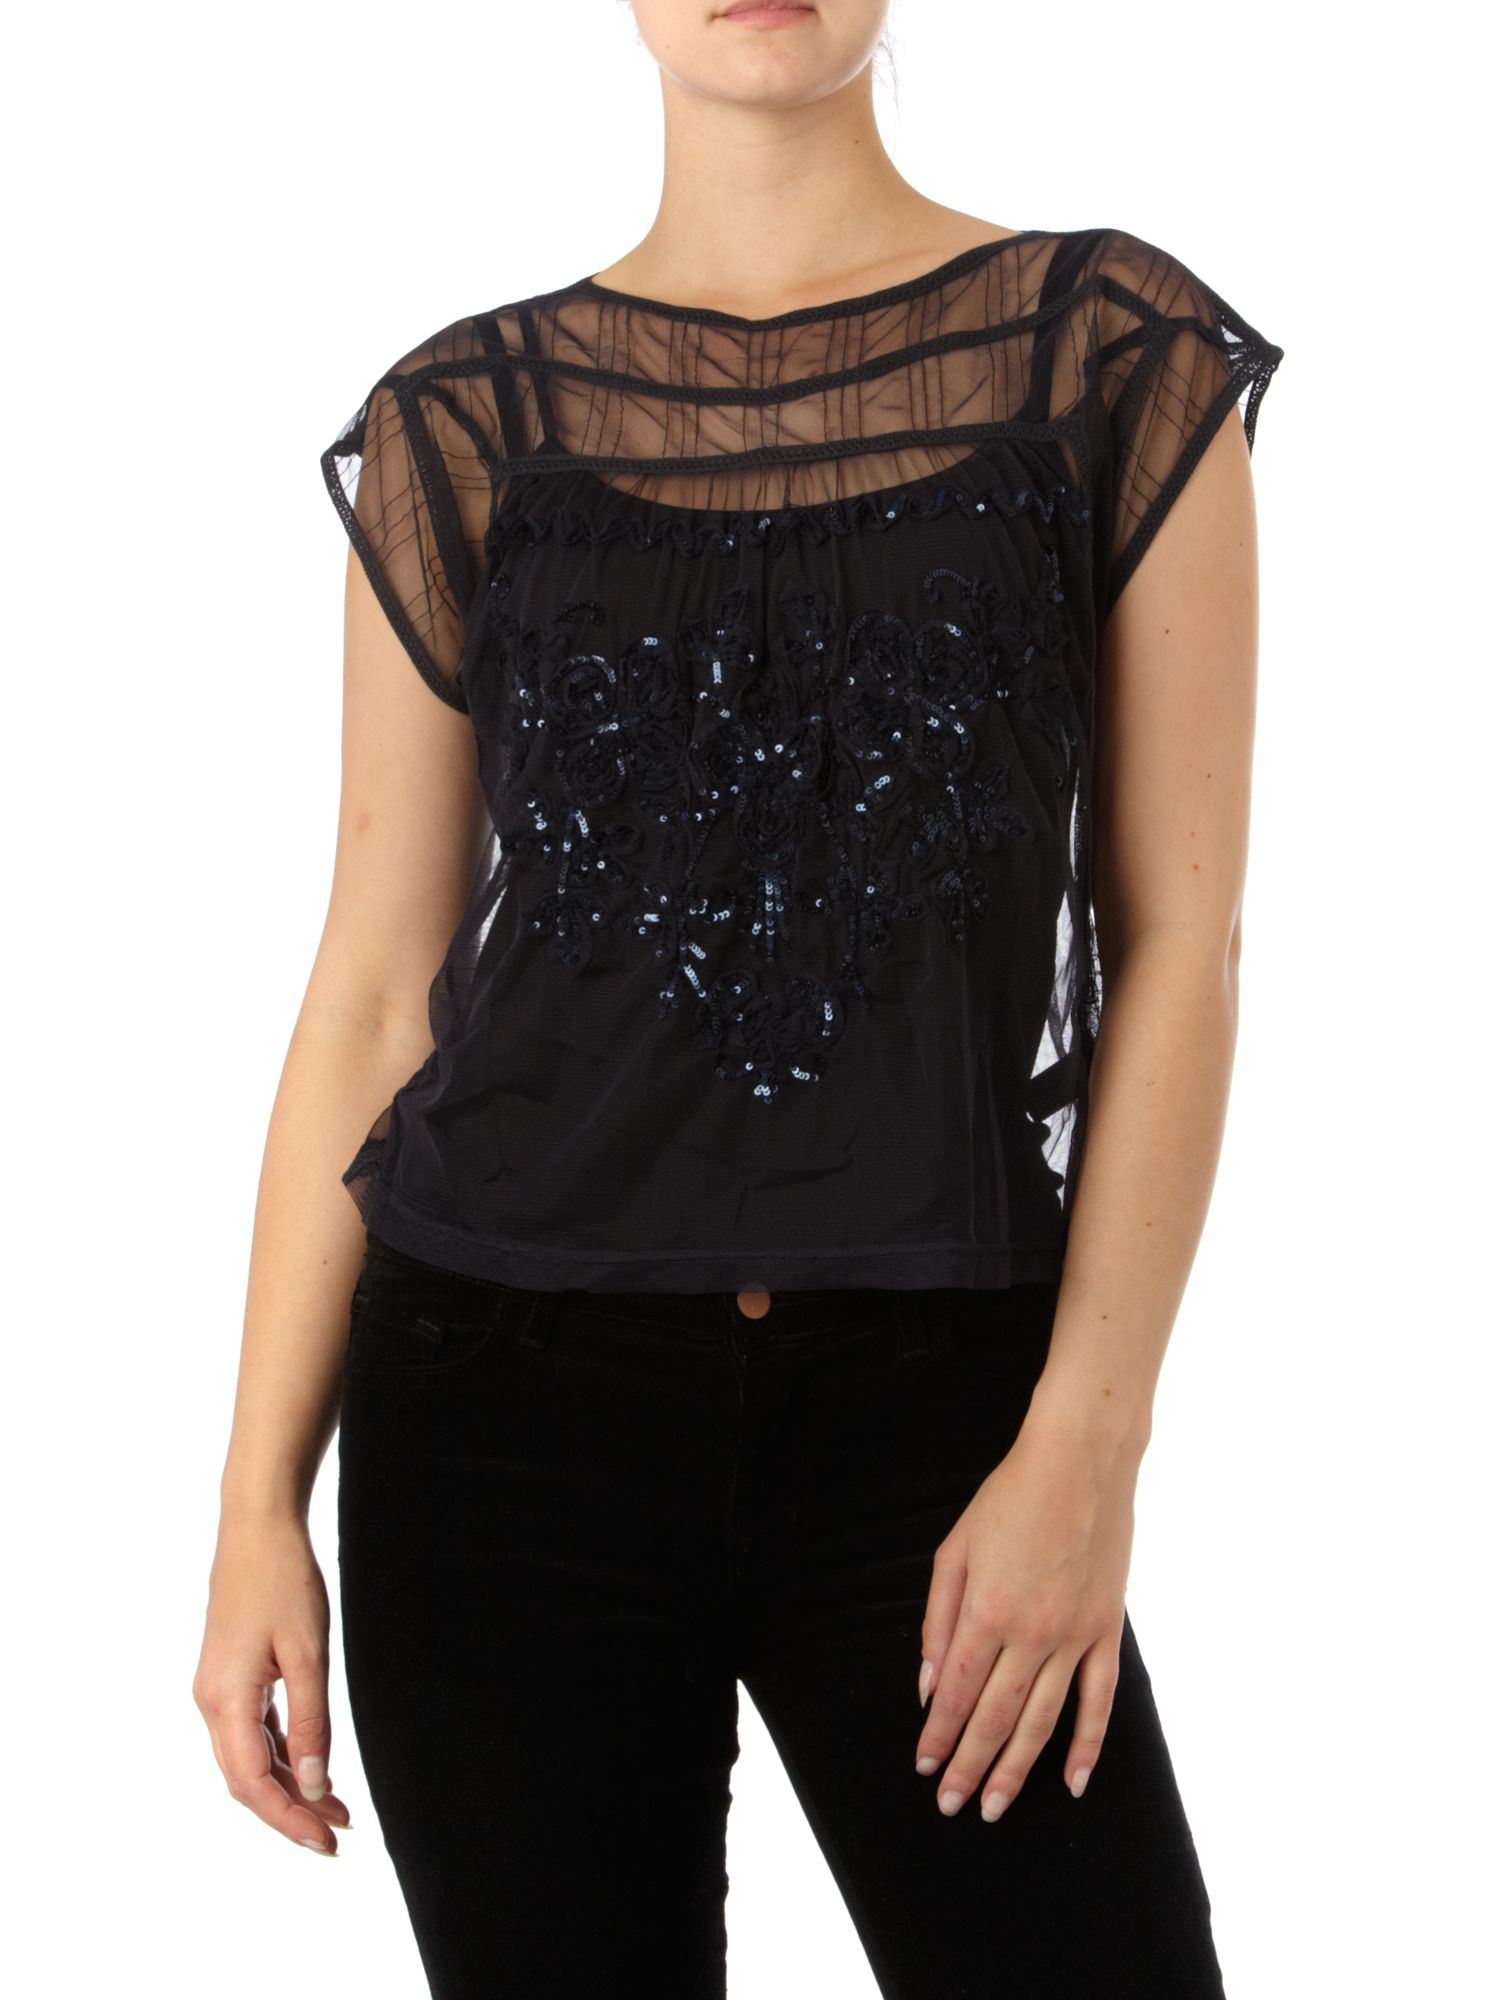 Therapy Sequin mesh blouse - Navy 14,14 product image